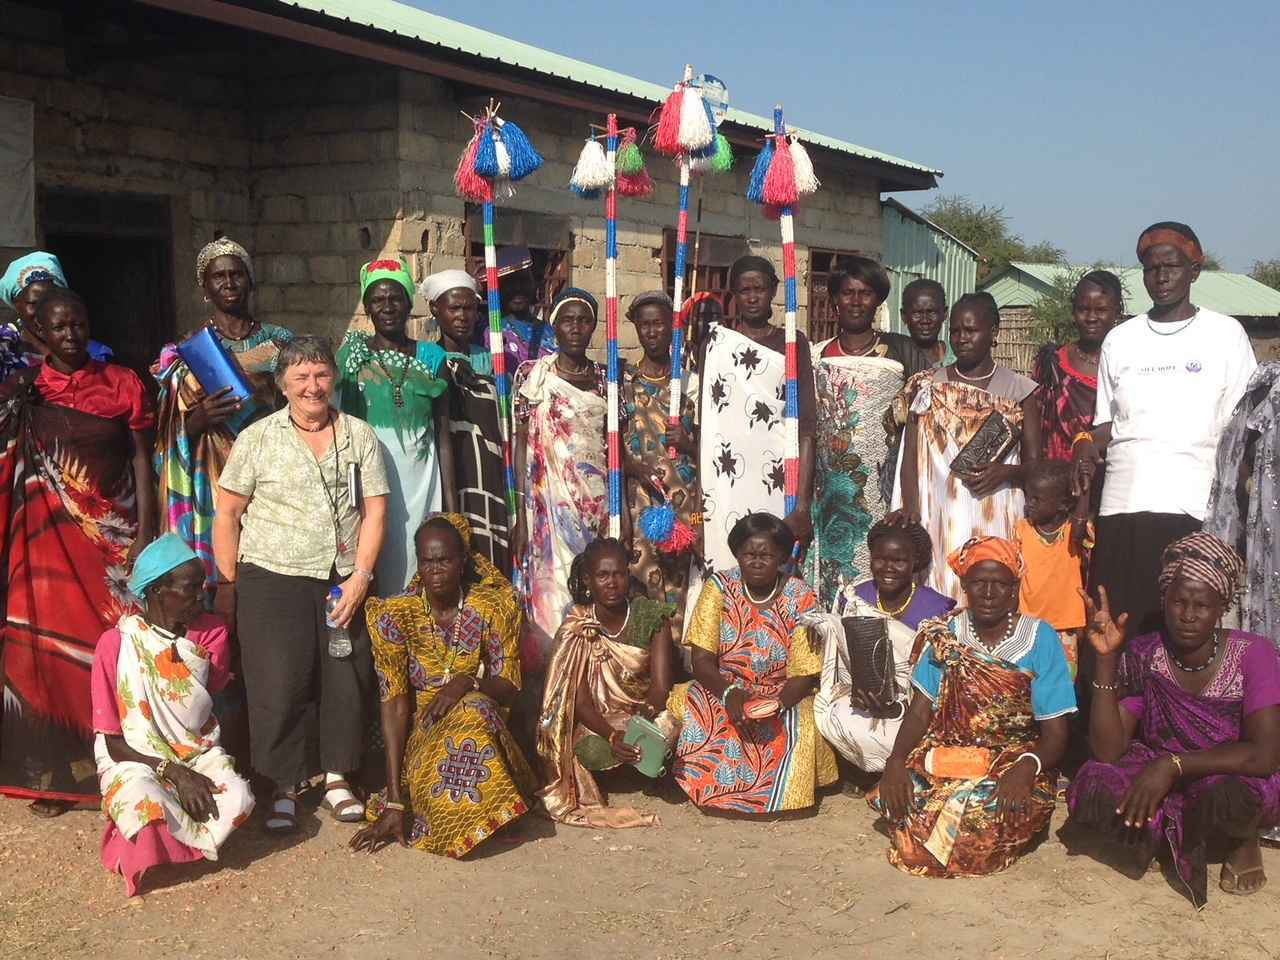 Women at the Center - Empower Women in South Sudan image